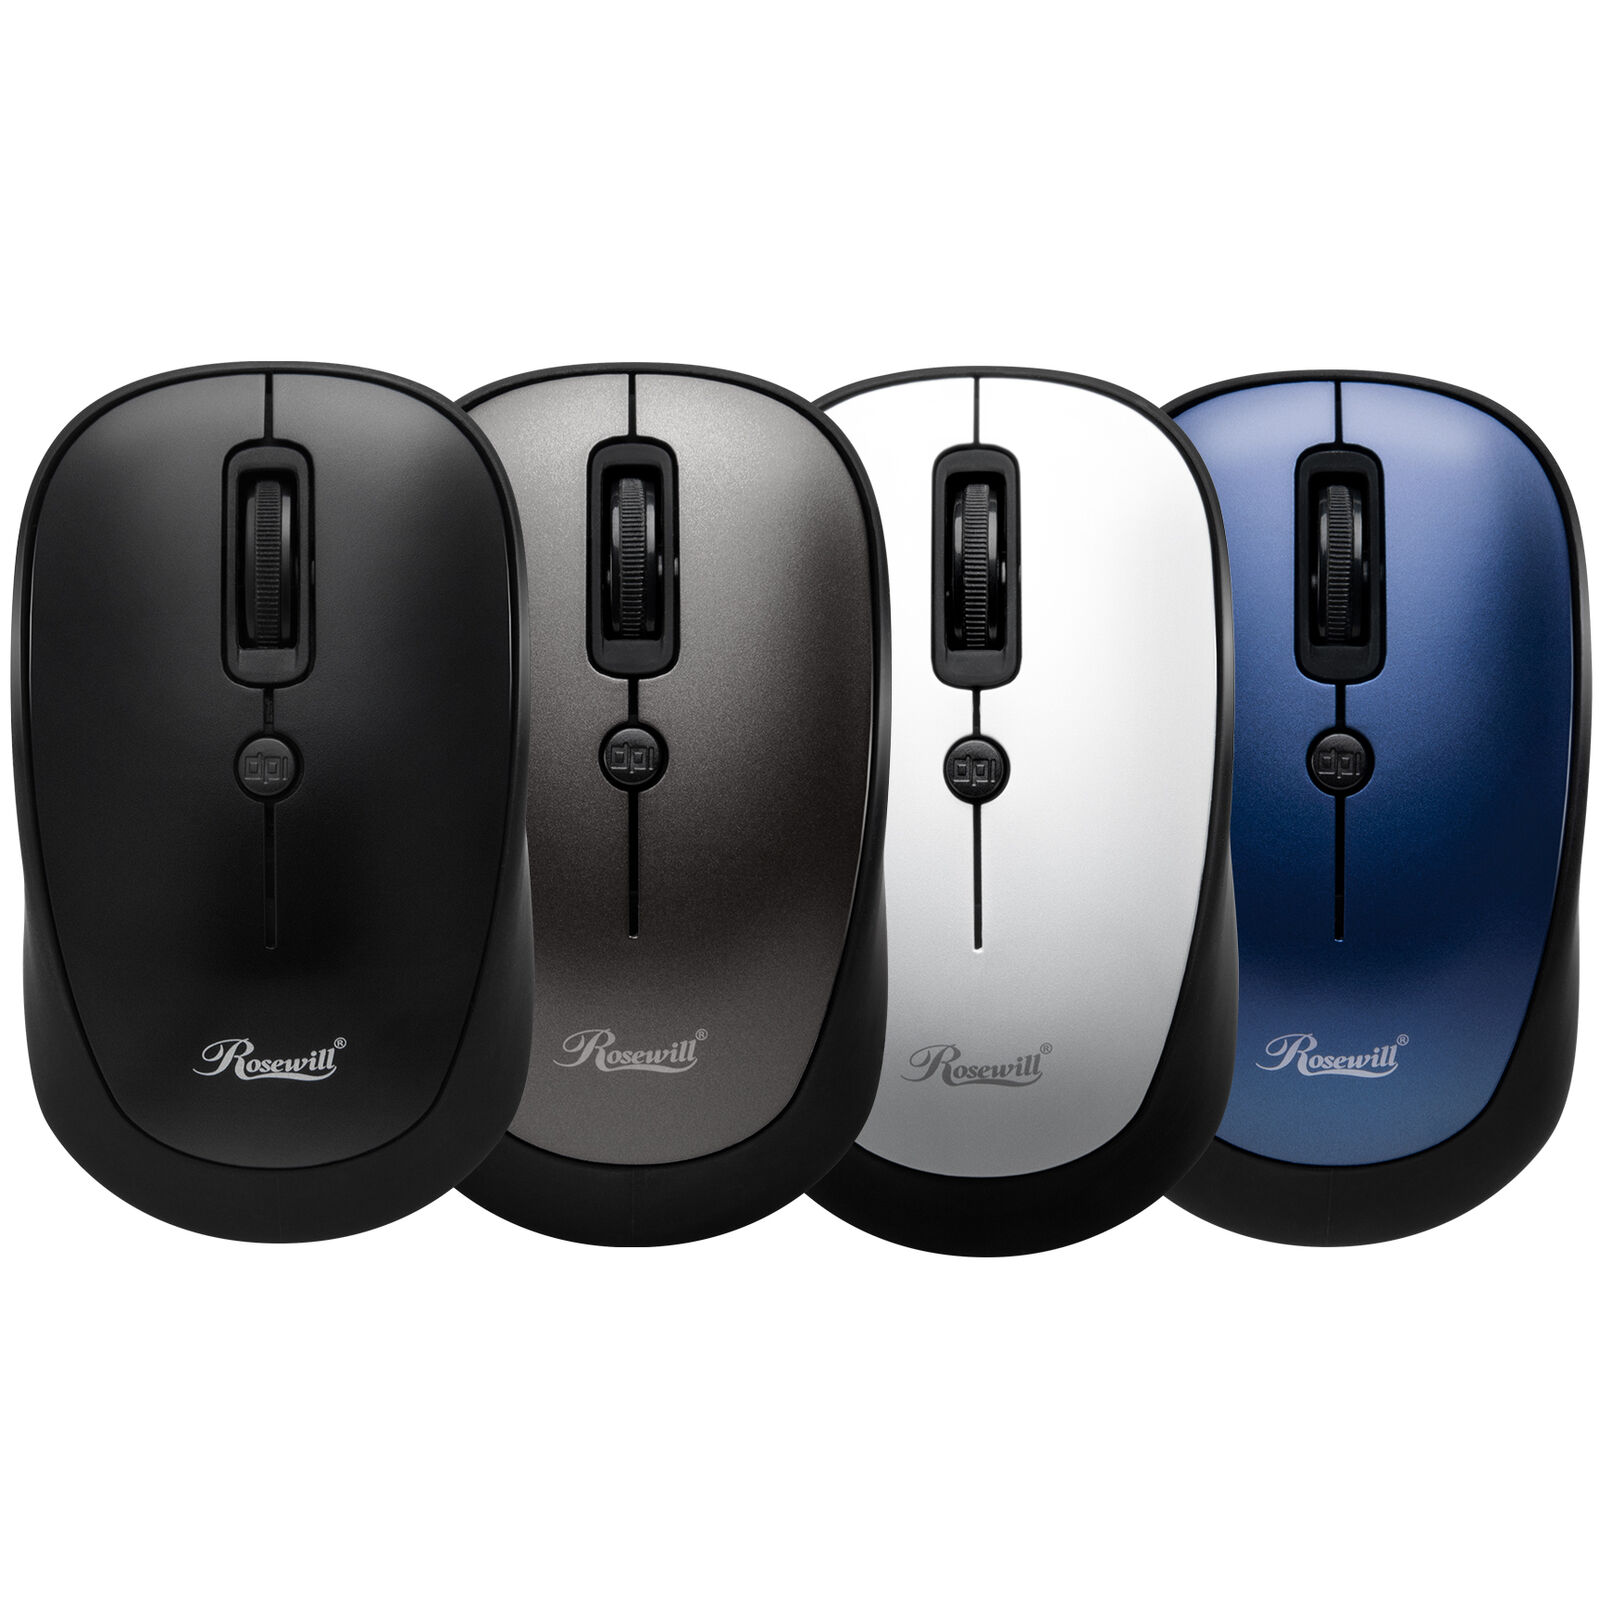 Rosewill Wireless Mouse, Optical Computer Mouse, Compact Siz